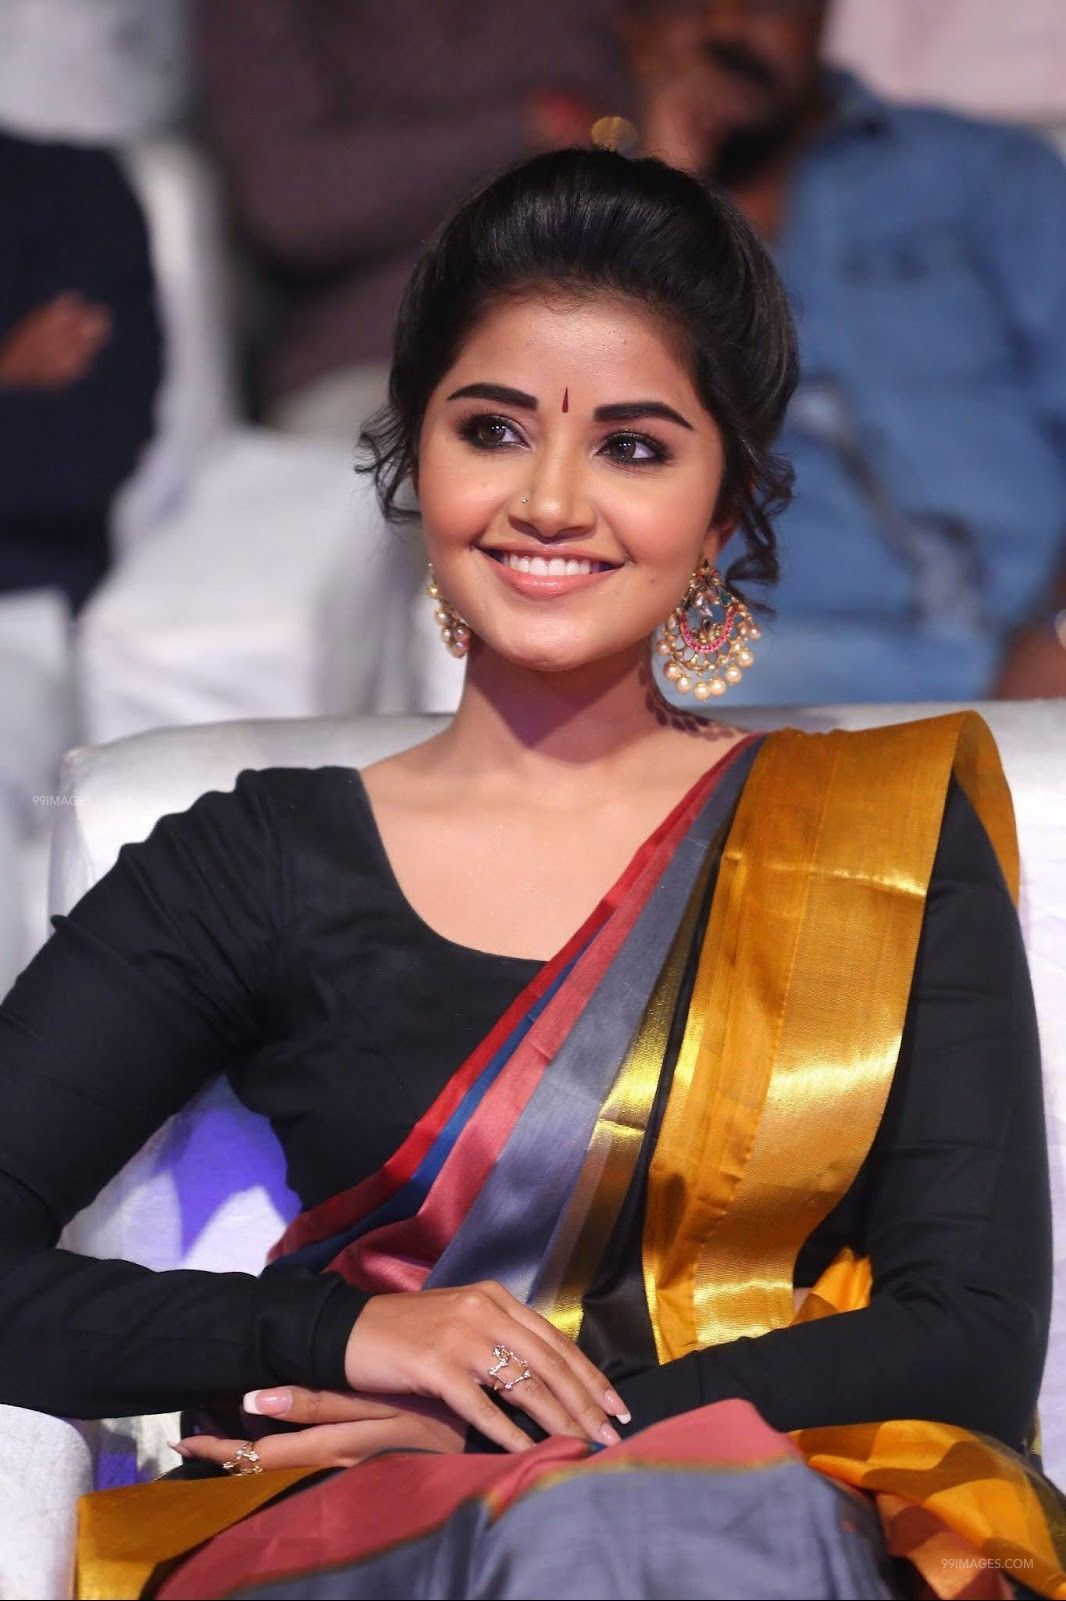 Anupama Parameswaran HD Wallpapers (Desktop Background / Android / iPhone) (1080p, 4k) (81359) - Anupama Parameswaran